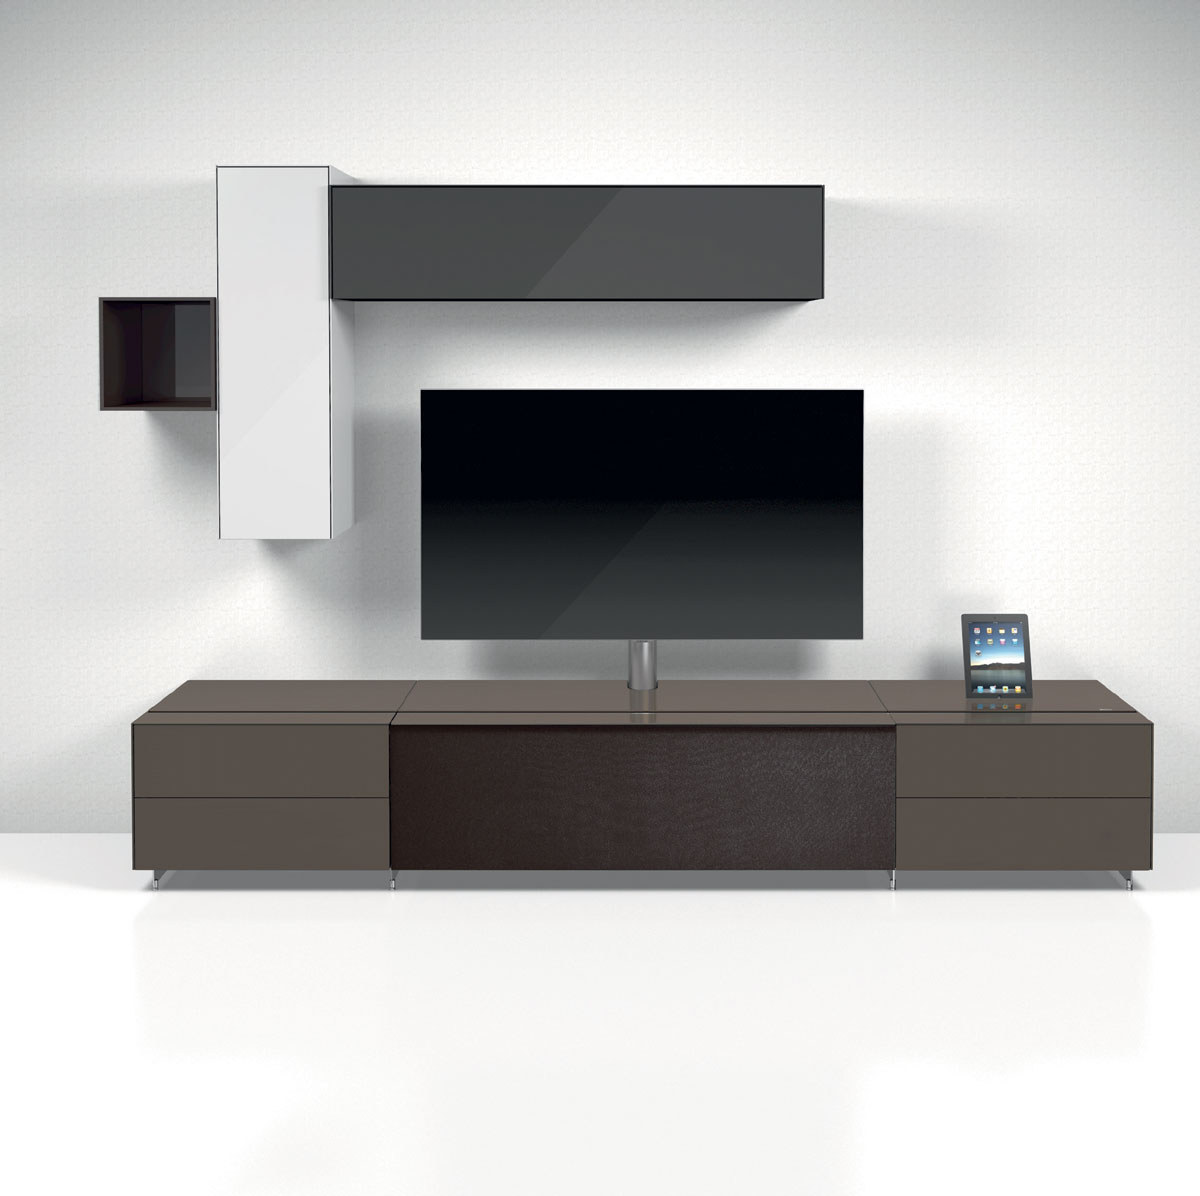 tv board lowboard movie korpus in schwarz matt fronten in creme hochglanz inkl led. Black Bedroom Furniture Sets. Home Design Ideas